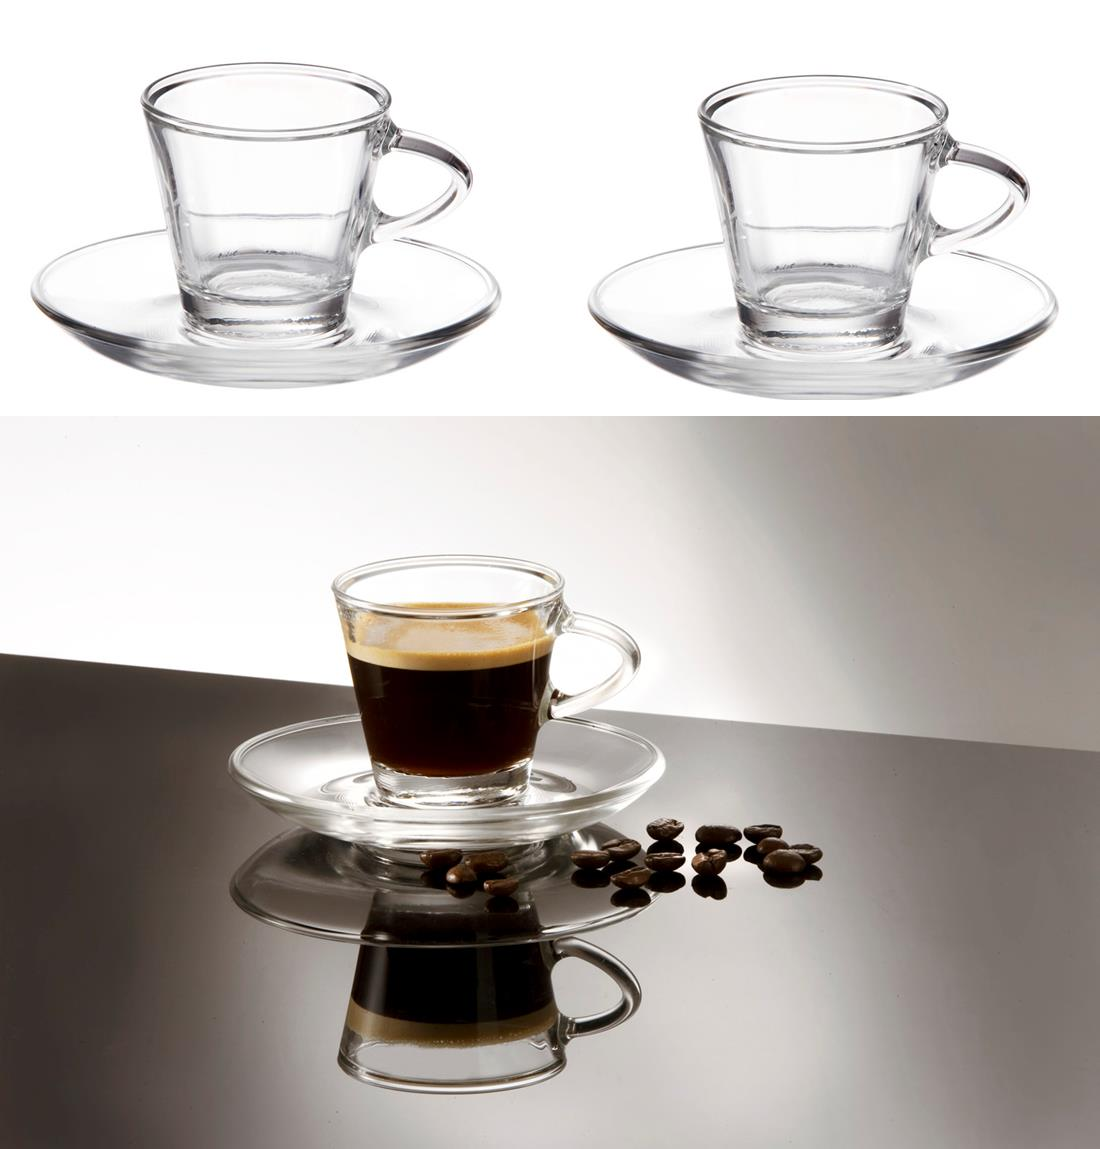 Sentinel 2 clear small glass espresso coffee cups saucers 80ml set of 2 gift boxed